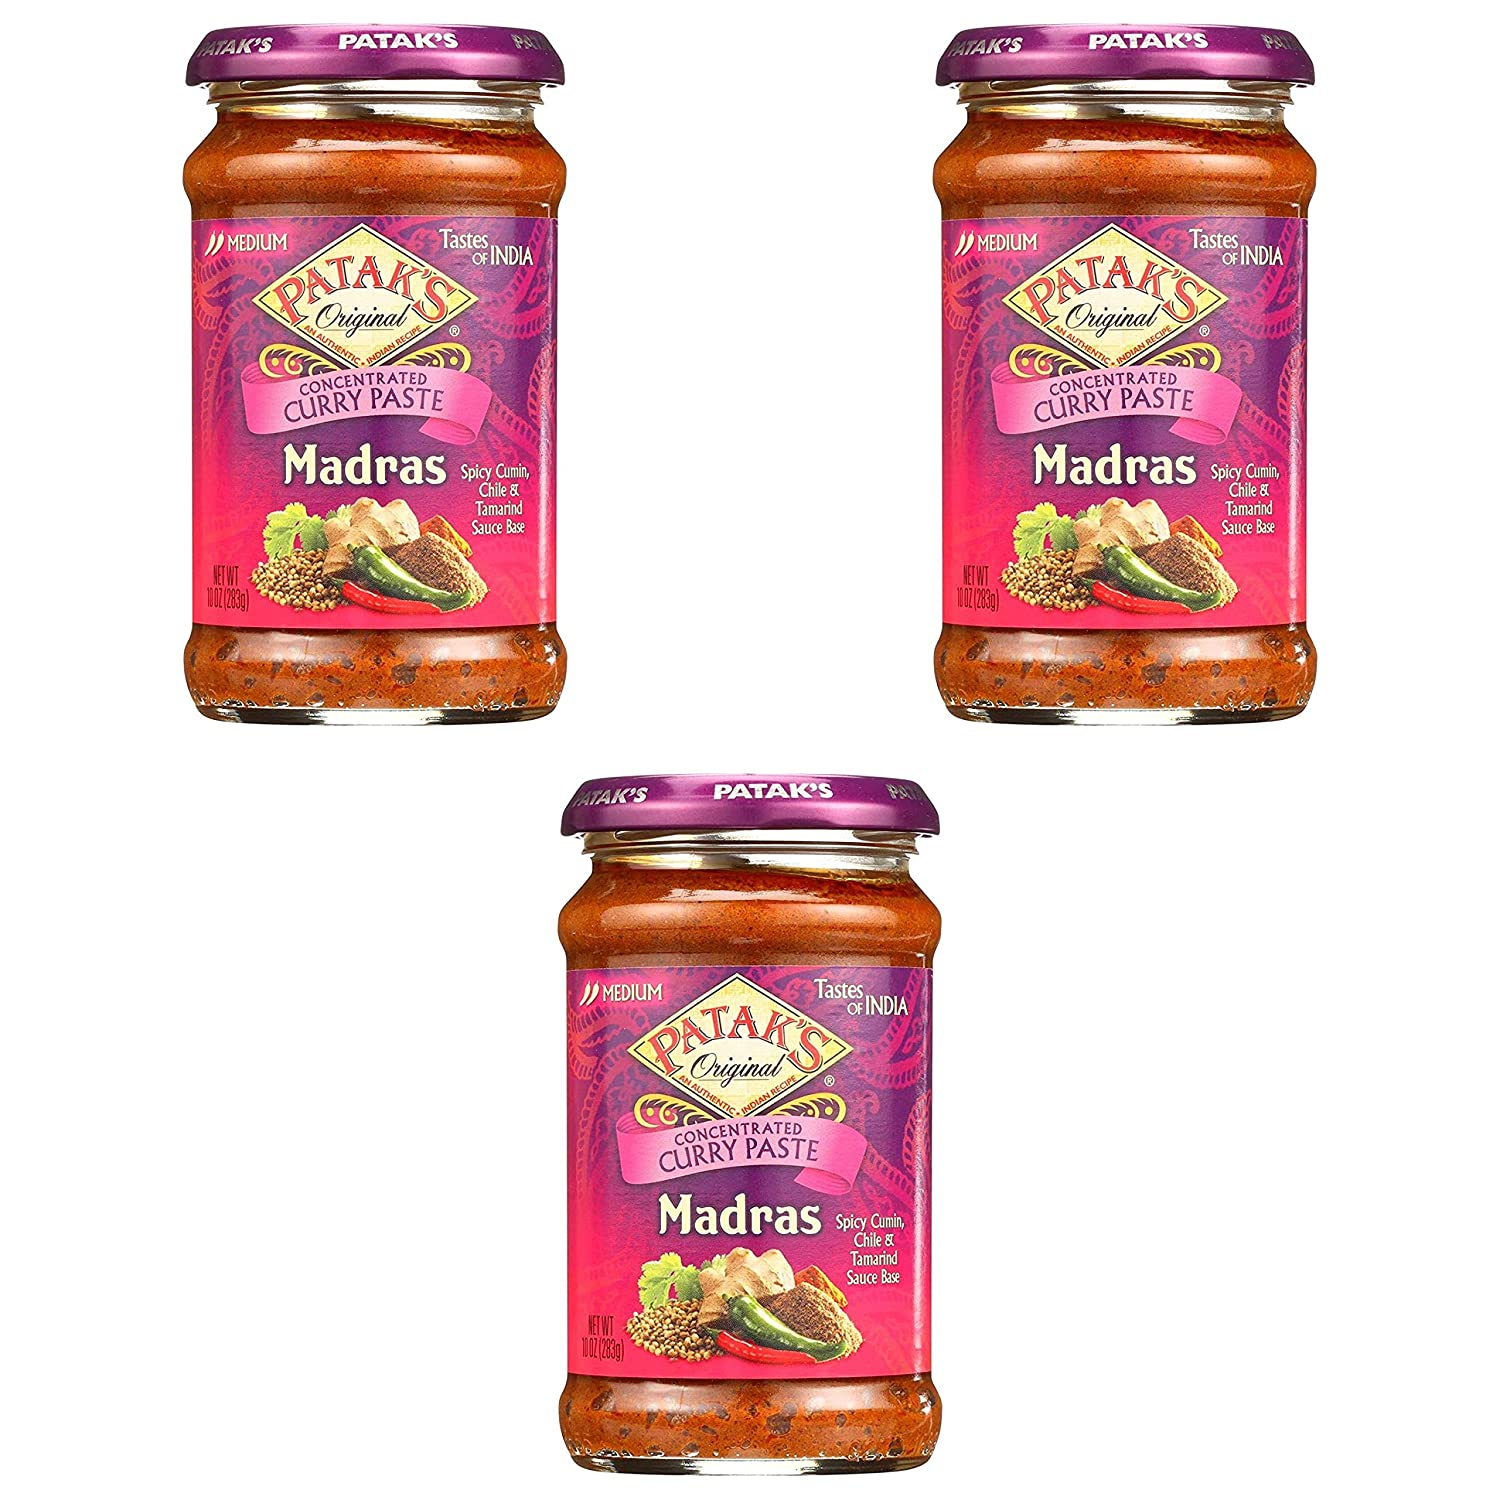 Patak's Madras Curry Paste Cooking Sauce of Case Ounces 6 10 OFFicial Max 45% OFF